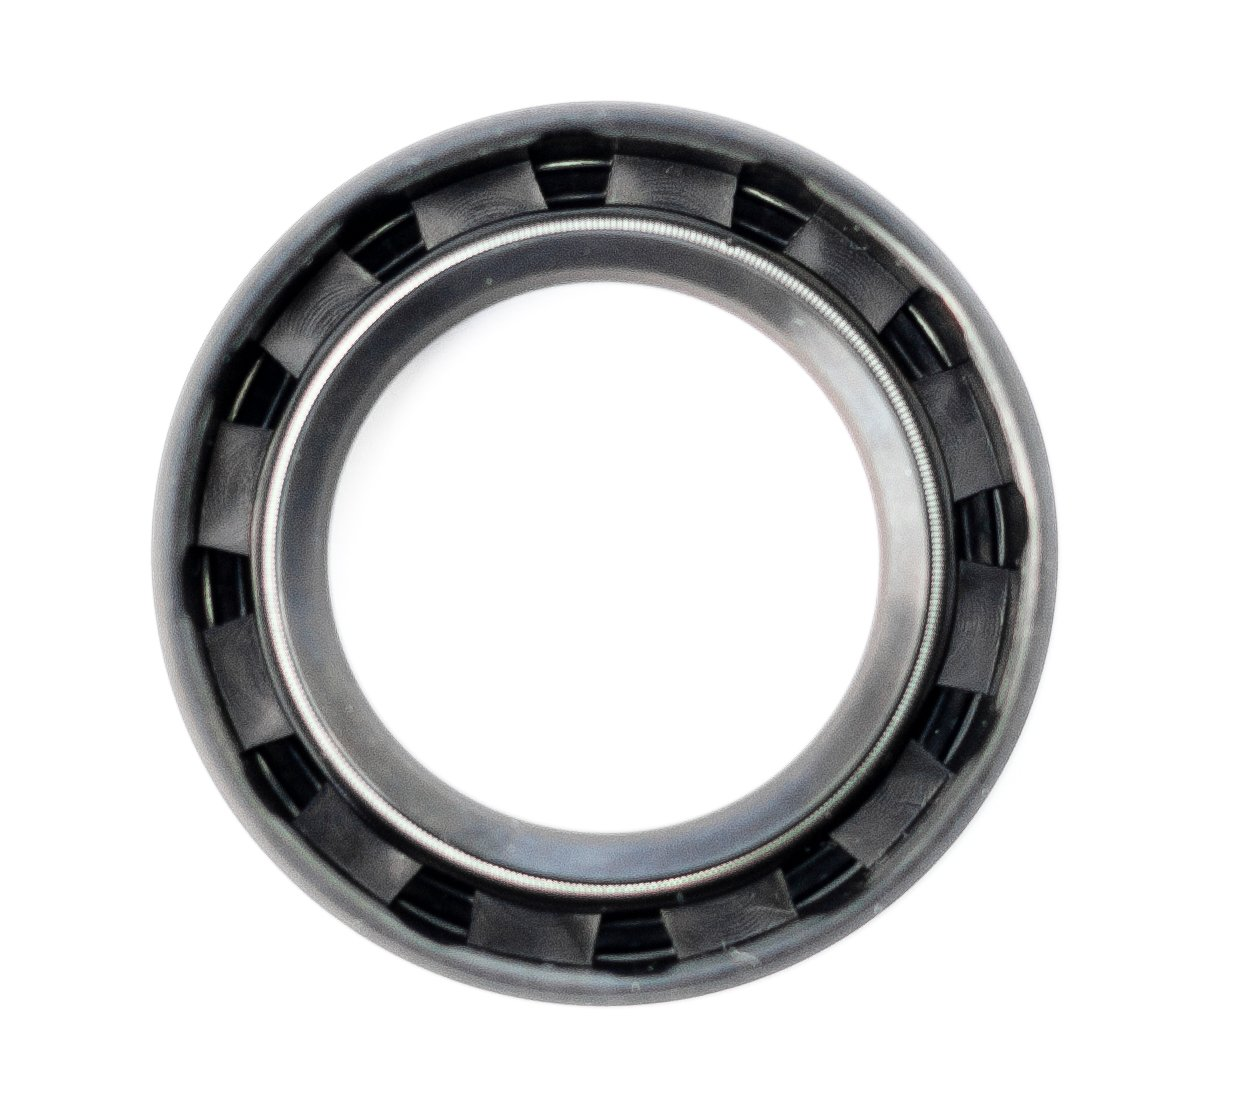 Oil Seal and Grease Seal TC 35X55X10 Rubber Double Lip with Spring 35mmX55mmX10mm by EAI Parts (Image #2)